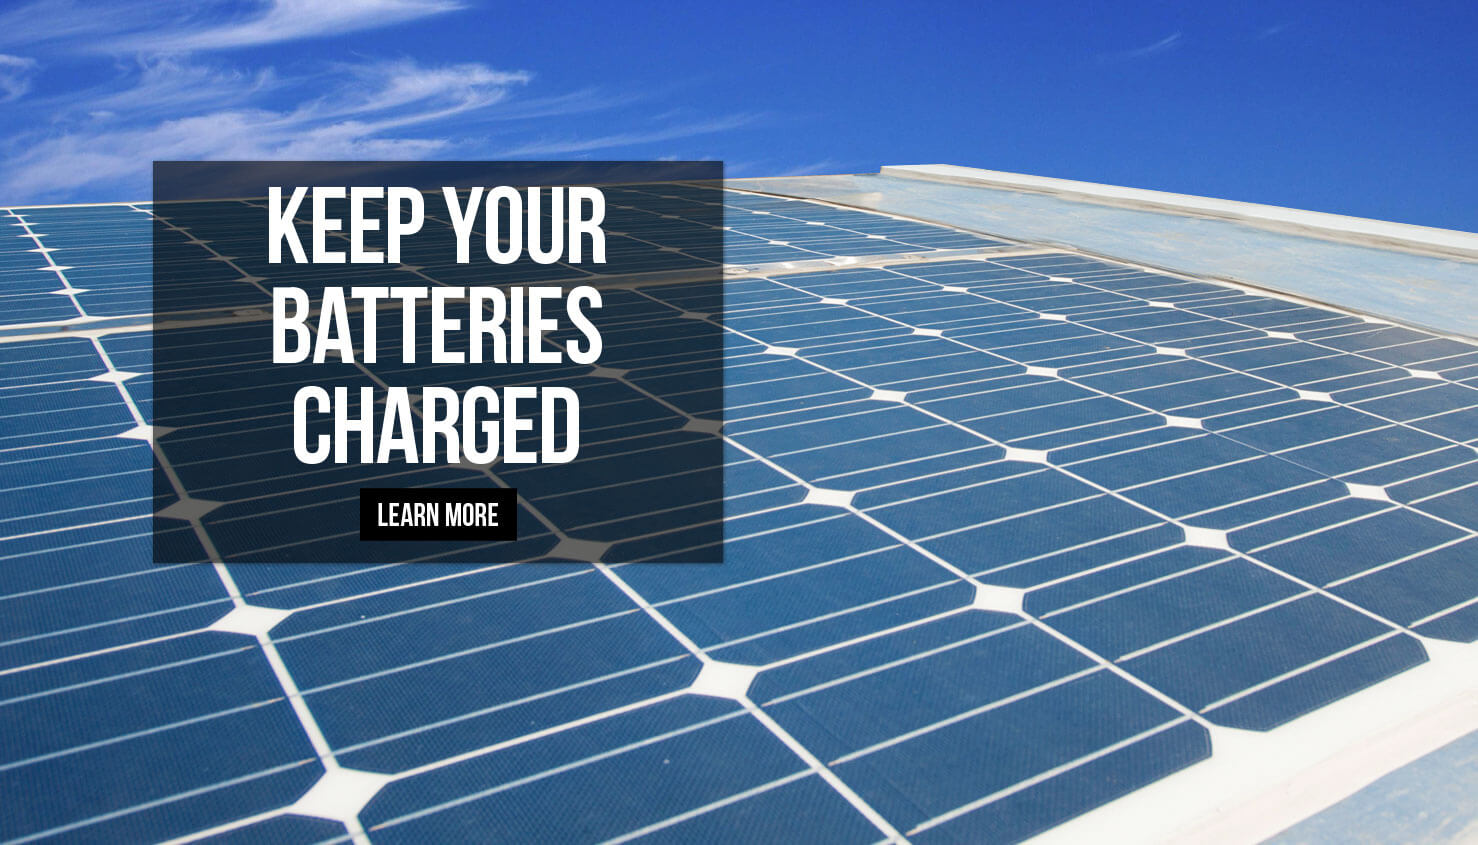 Keep Your Batteries Charged